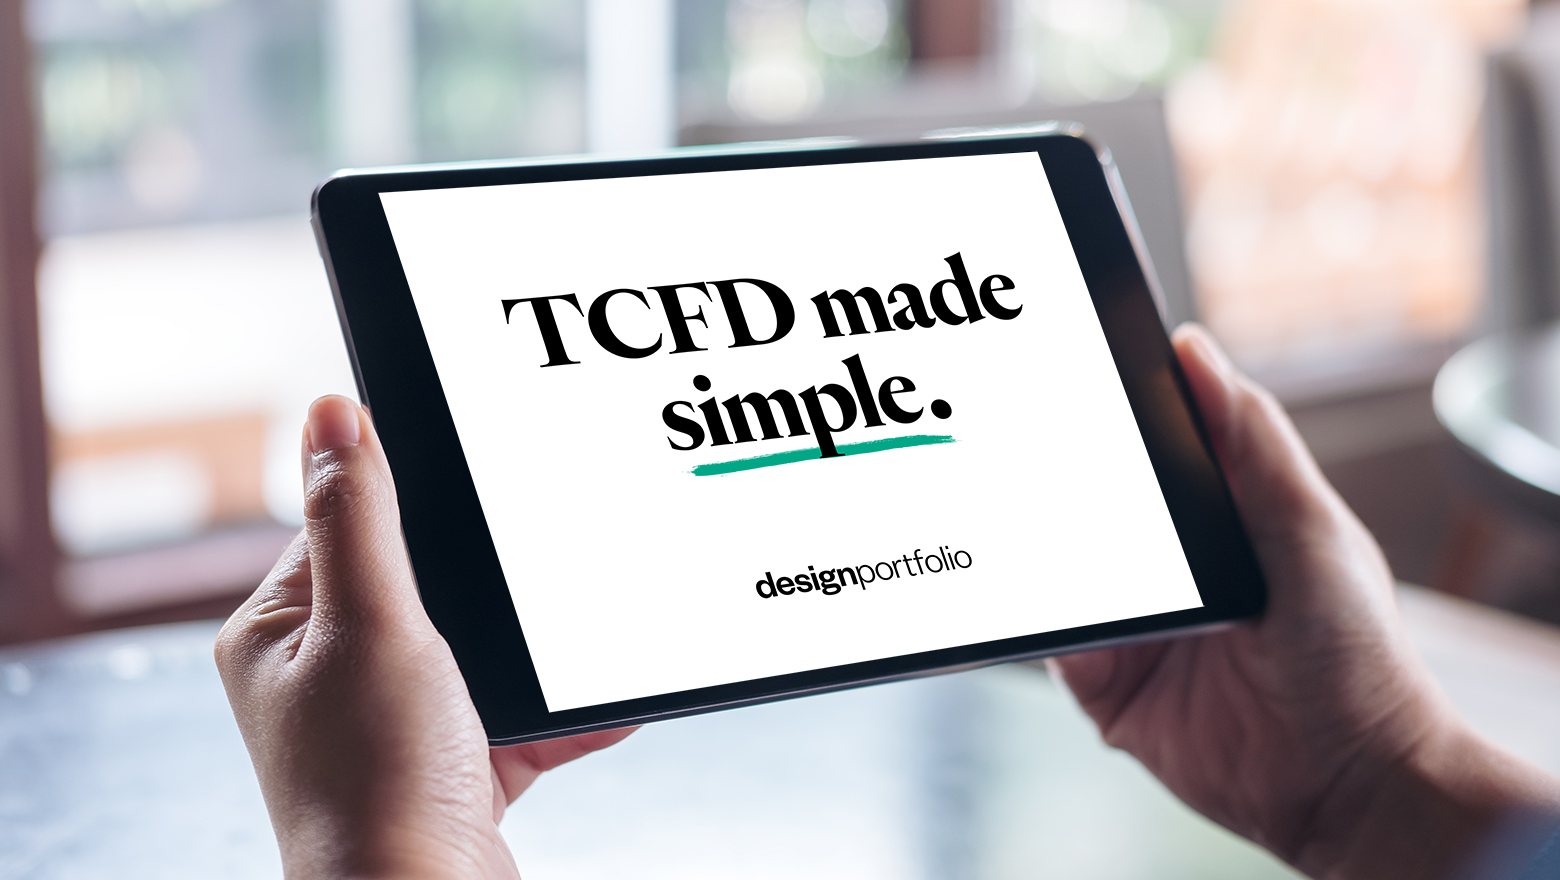 TCFD made simple.